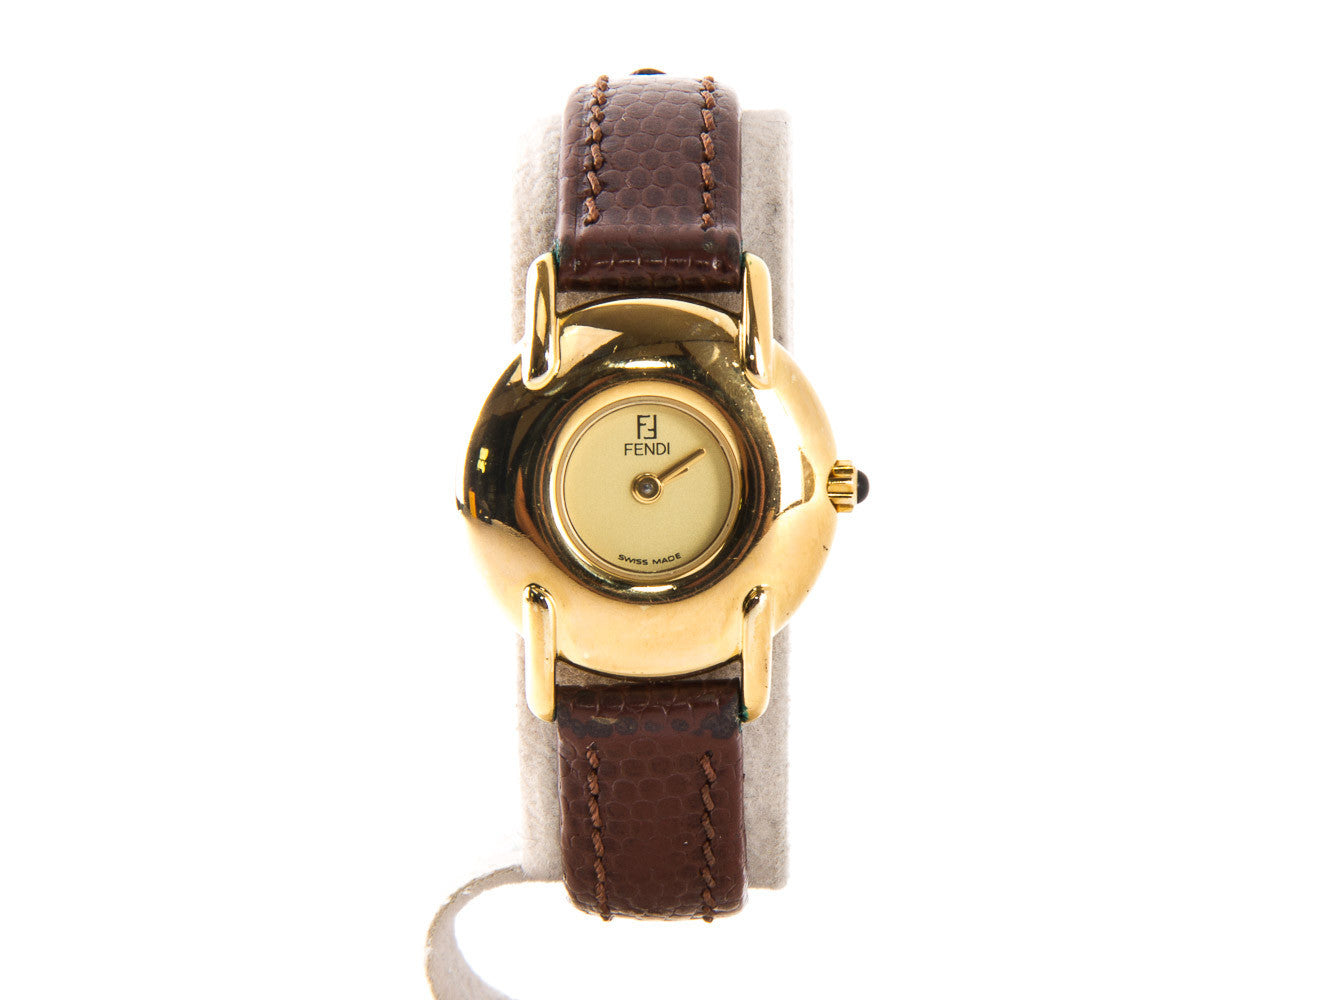 Fendi Orologi Ladies Wristwatch 400 L Gold Tone